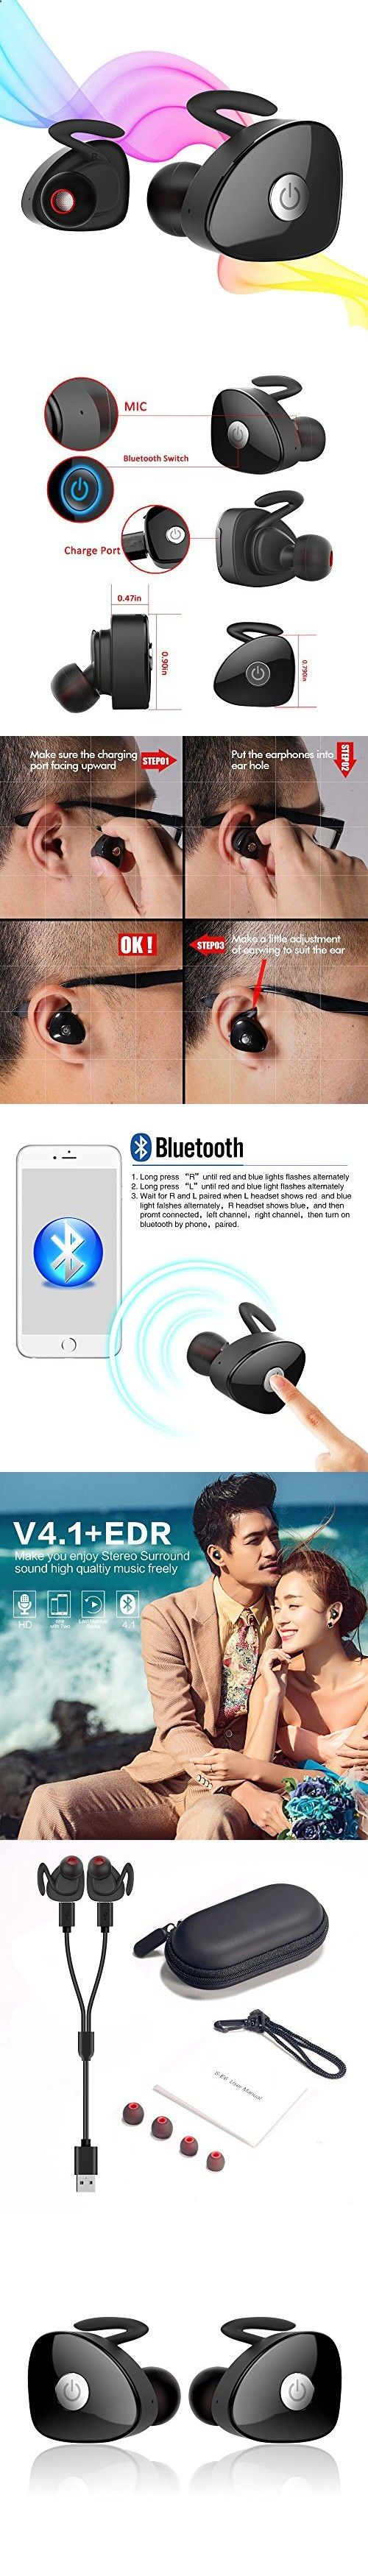 Sports Headphones - Cordfree Bluetooth Earphones, Egrd Mini Invisible Truly Wireless Bluetooth Sports Headphones Earbuds,2 Working Modes-Dual Ear Mode/Single Ear Mode,Sweatproof Fitness Earphones With Mic - If you usually go out to run, walk or any other sport in which you usually carry music to accompany or motivate you, we have selected 13 models of sports headphones that we consider among the best in the market for different aspects, from comfort to use to design, sound quality or v...